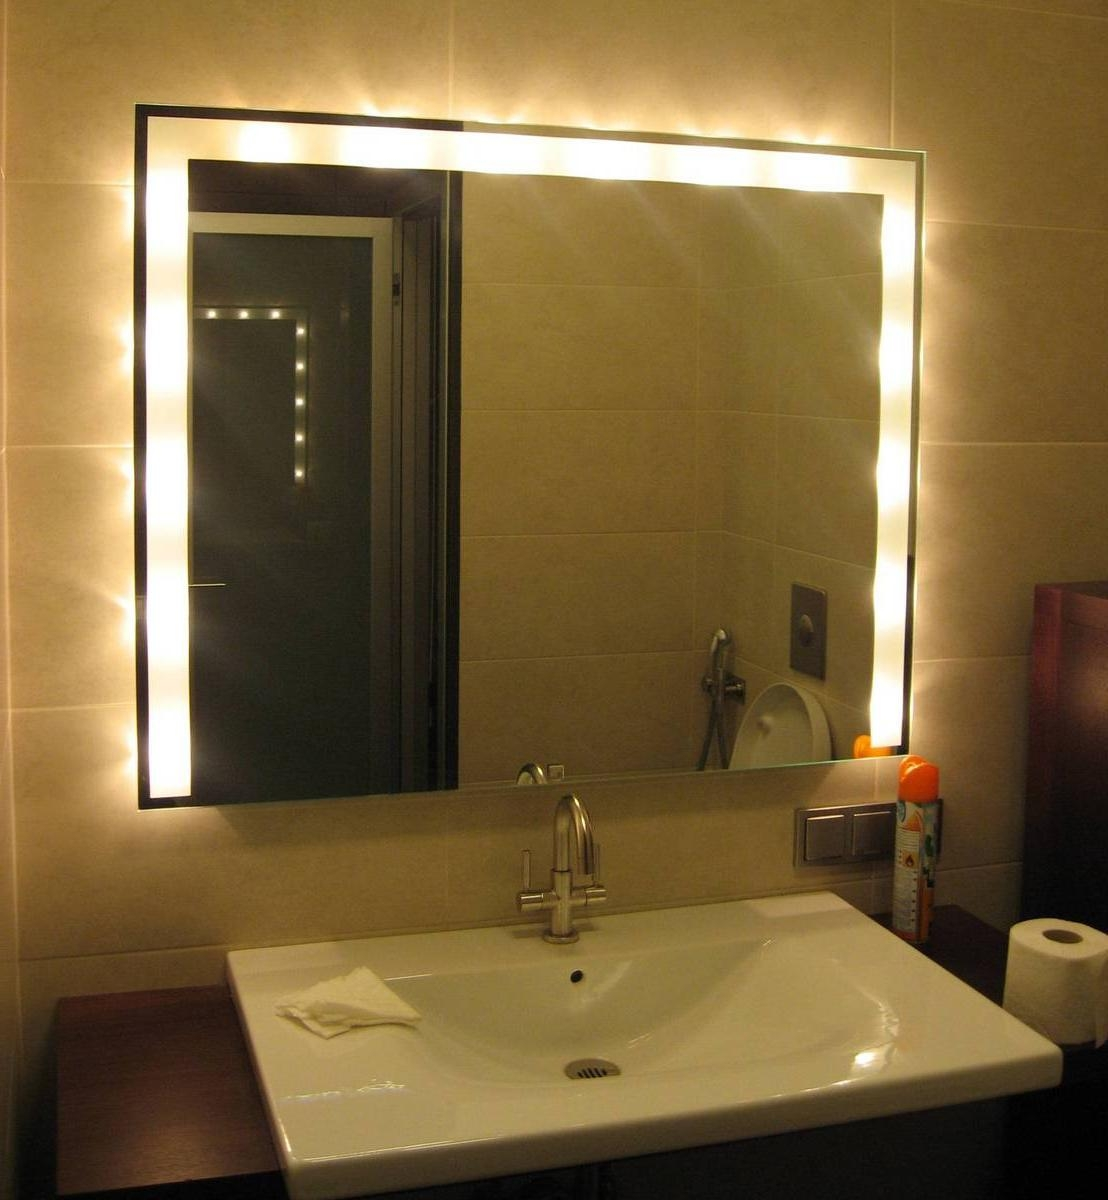 Bathroom mirror light bulbs